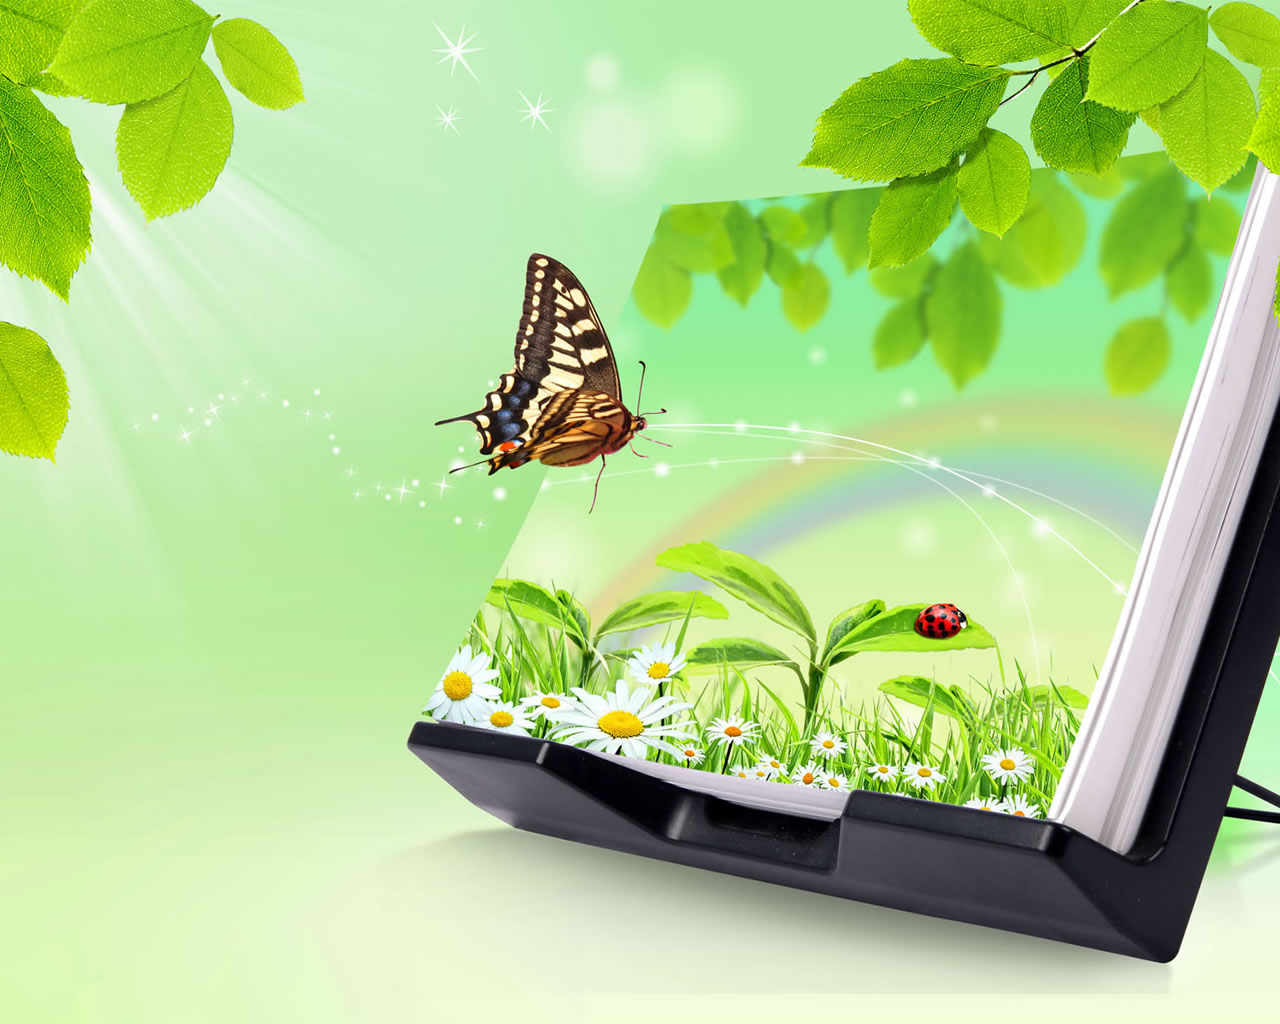 3d nature backgrounds - Mobile wallpapers